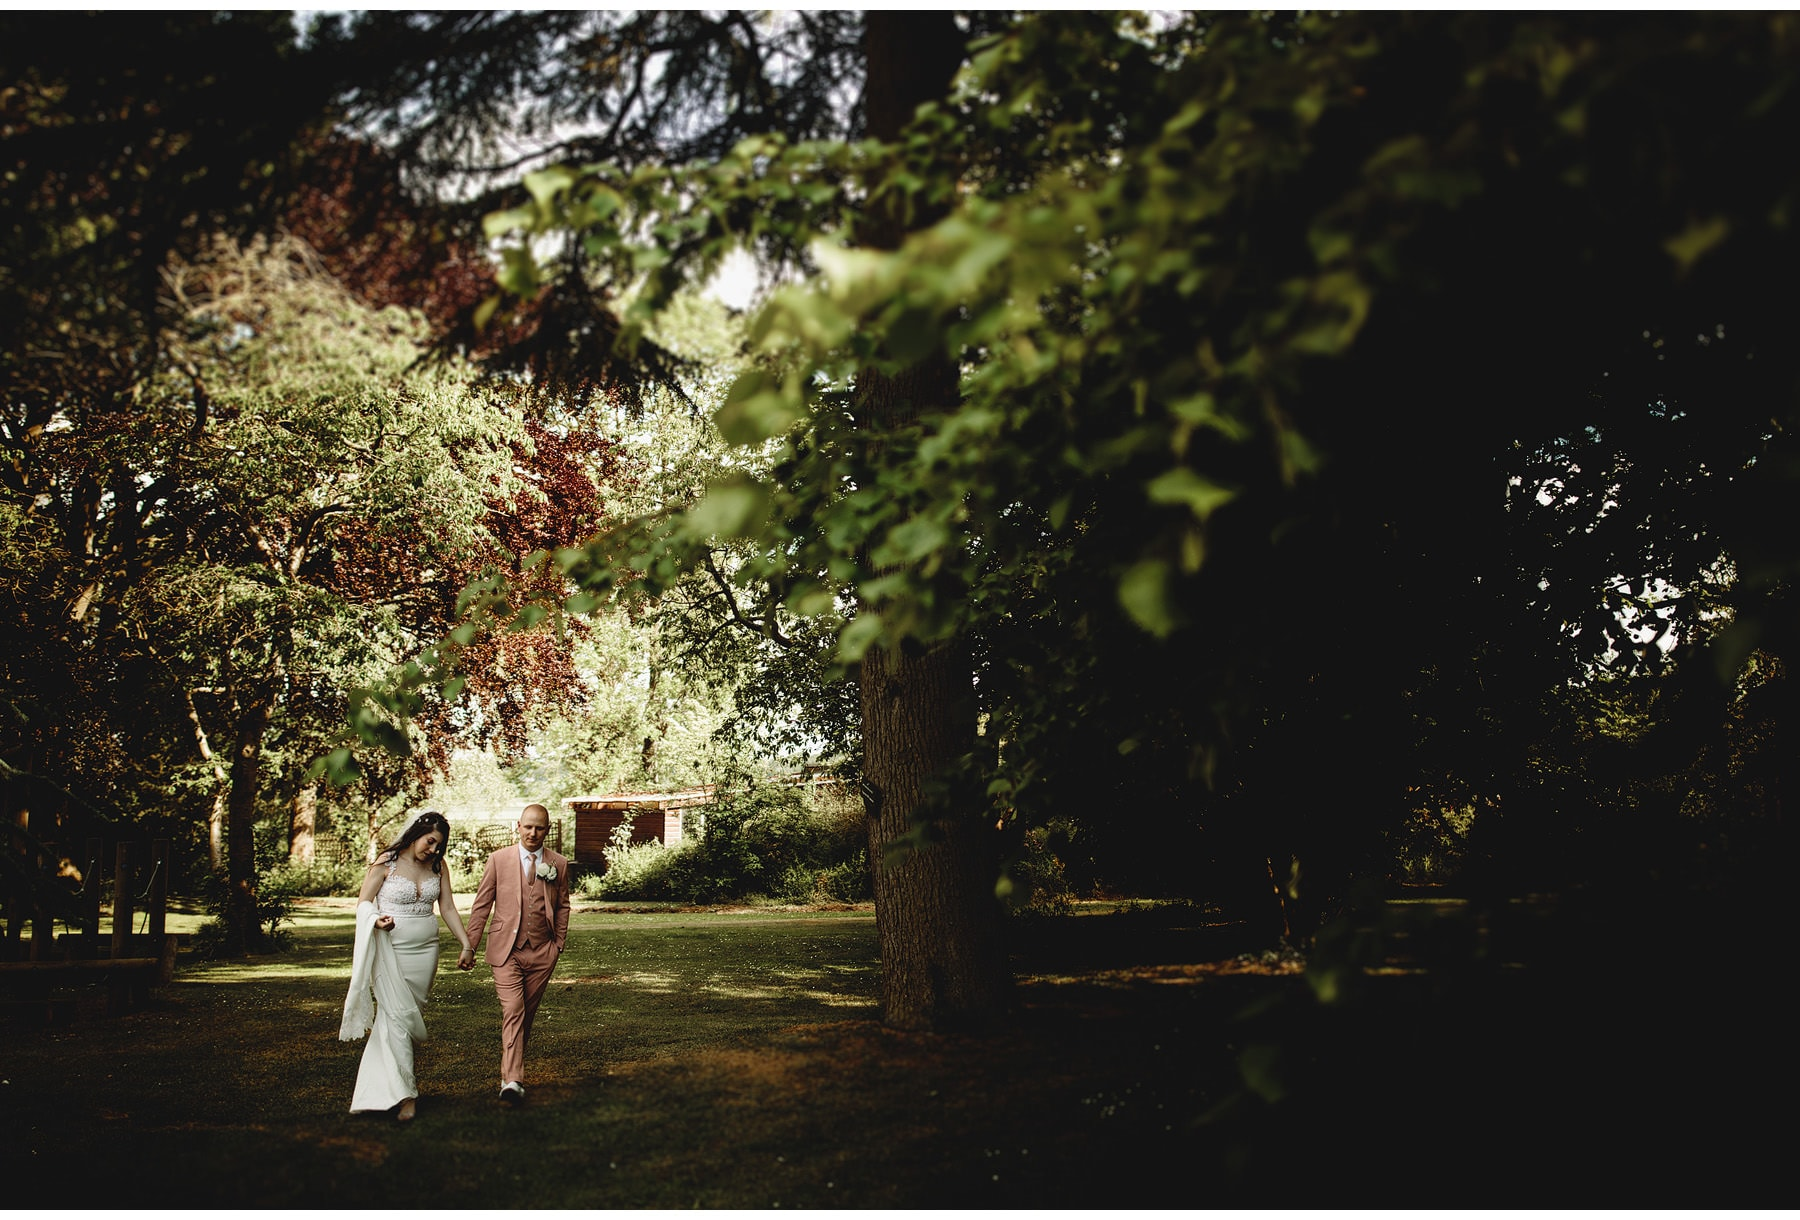 the bride & groom under the trees at Hothorpe Hall